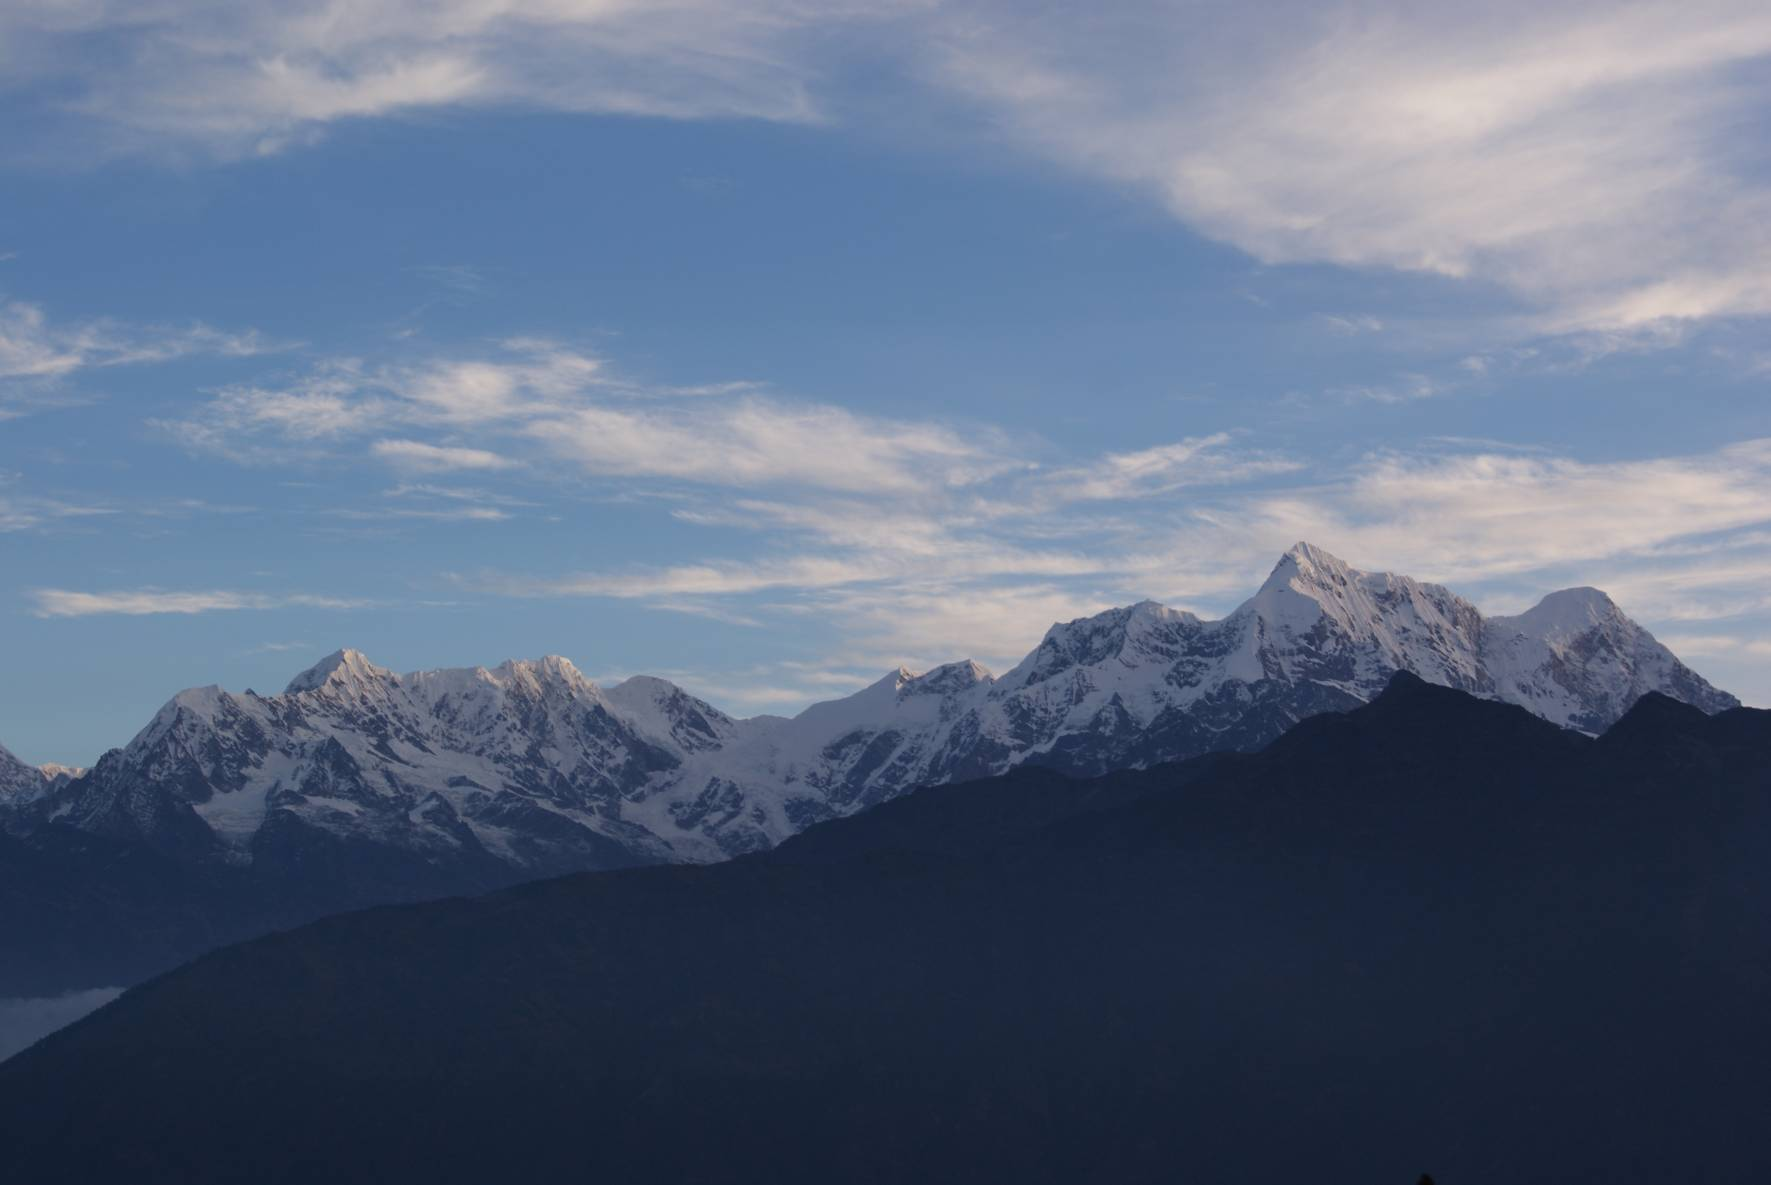 view of Numbur Himal from Ngowur below Pike